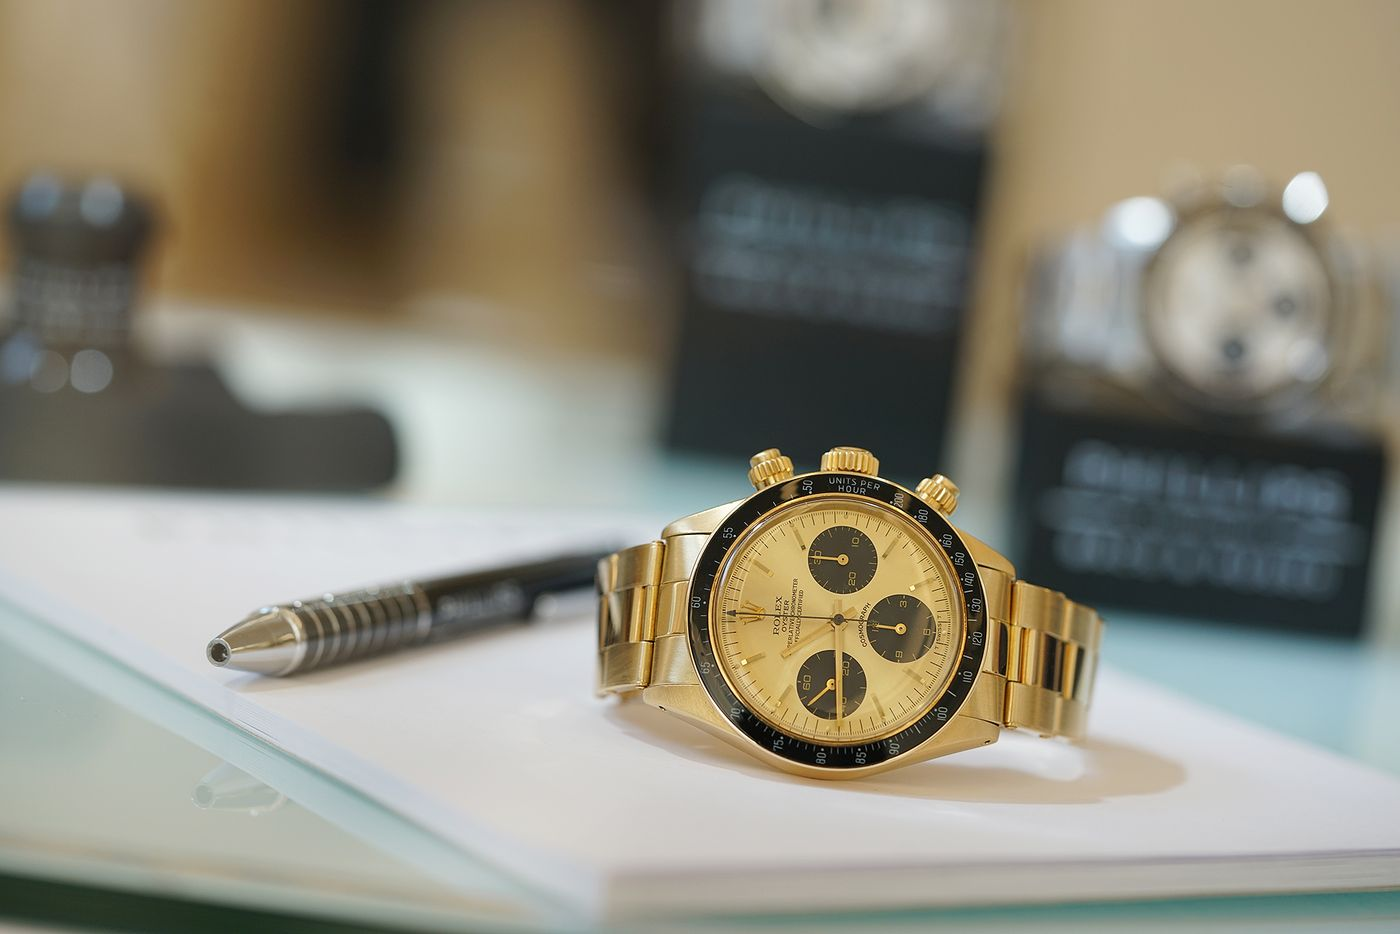 A selection of very rare and desirable watches from Rolex, Patek Philippe and A. Lange & Söhne, to name just a few, will be showcased for private sale at Phillips' London headquarters between 20-24 August.